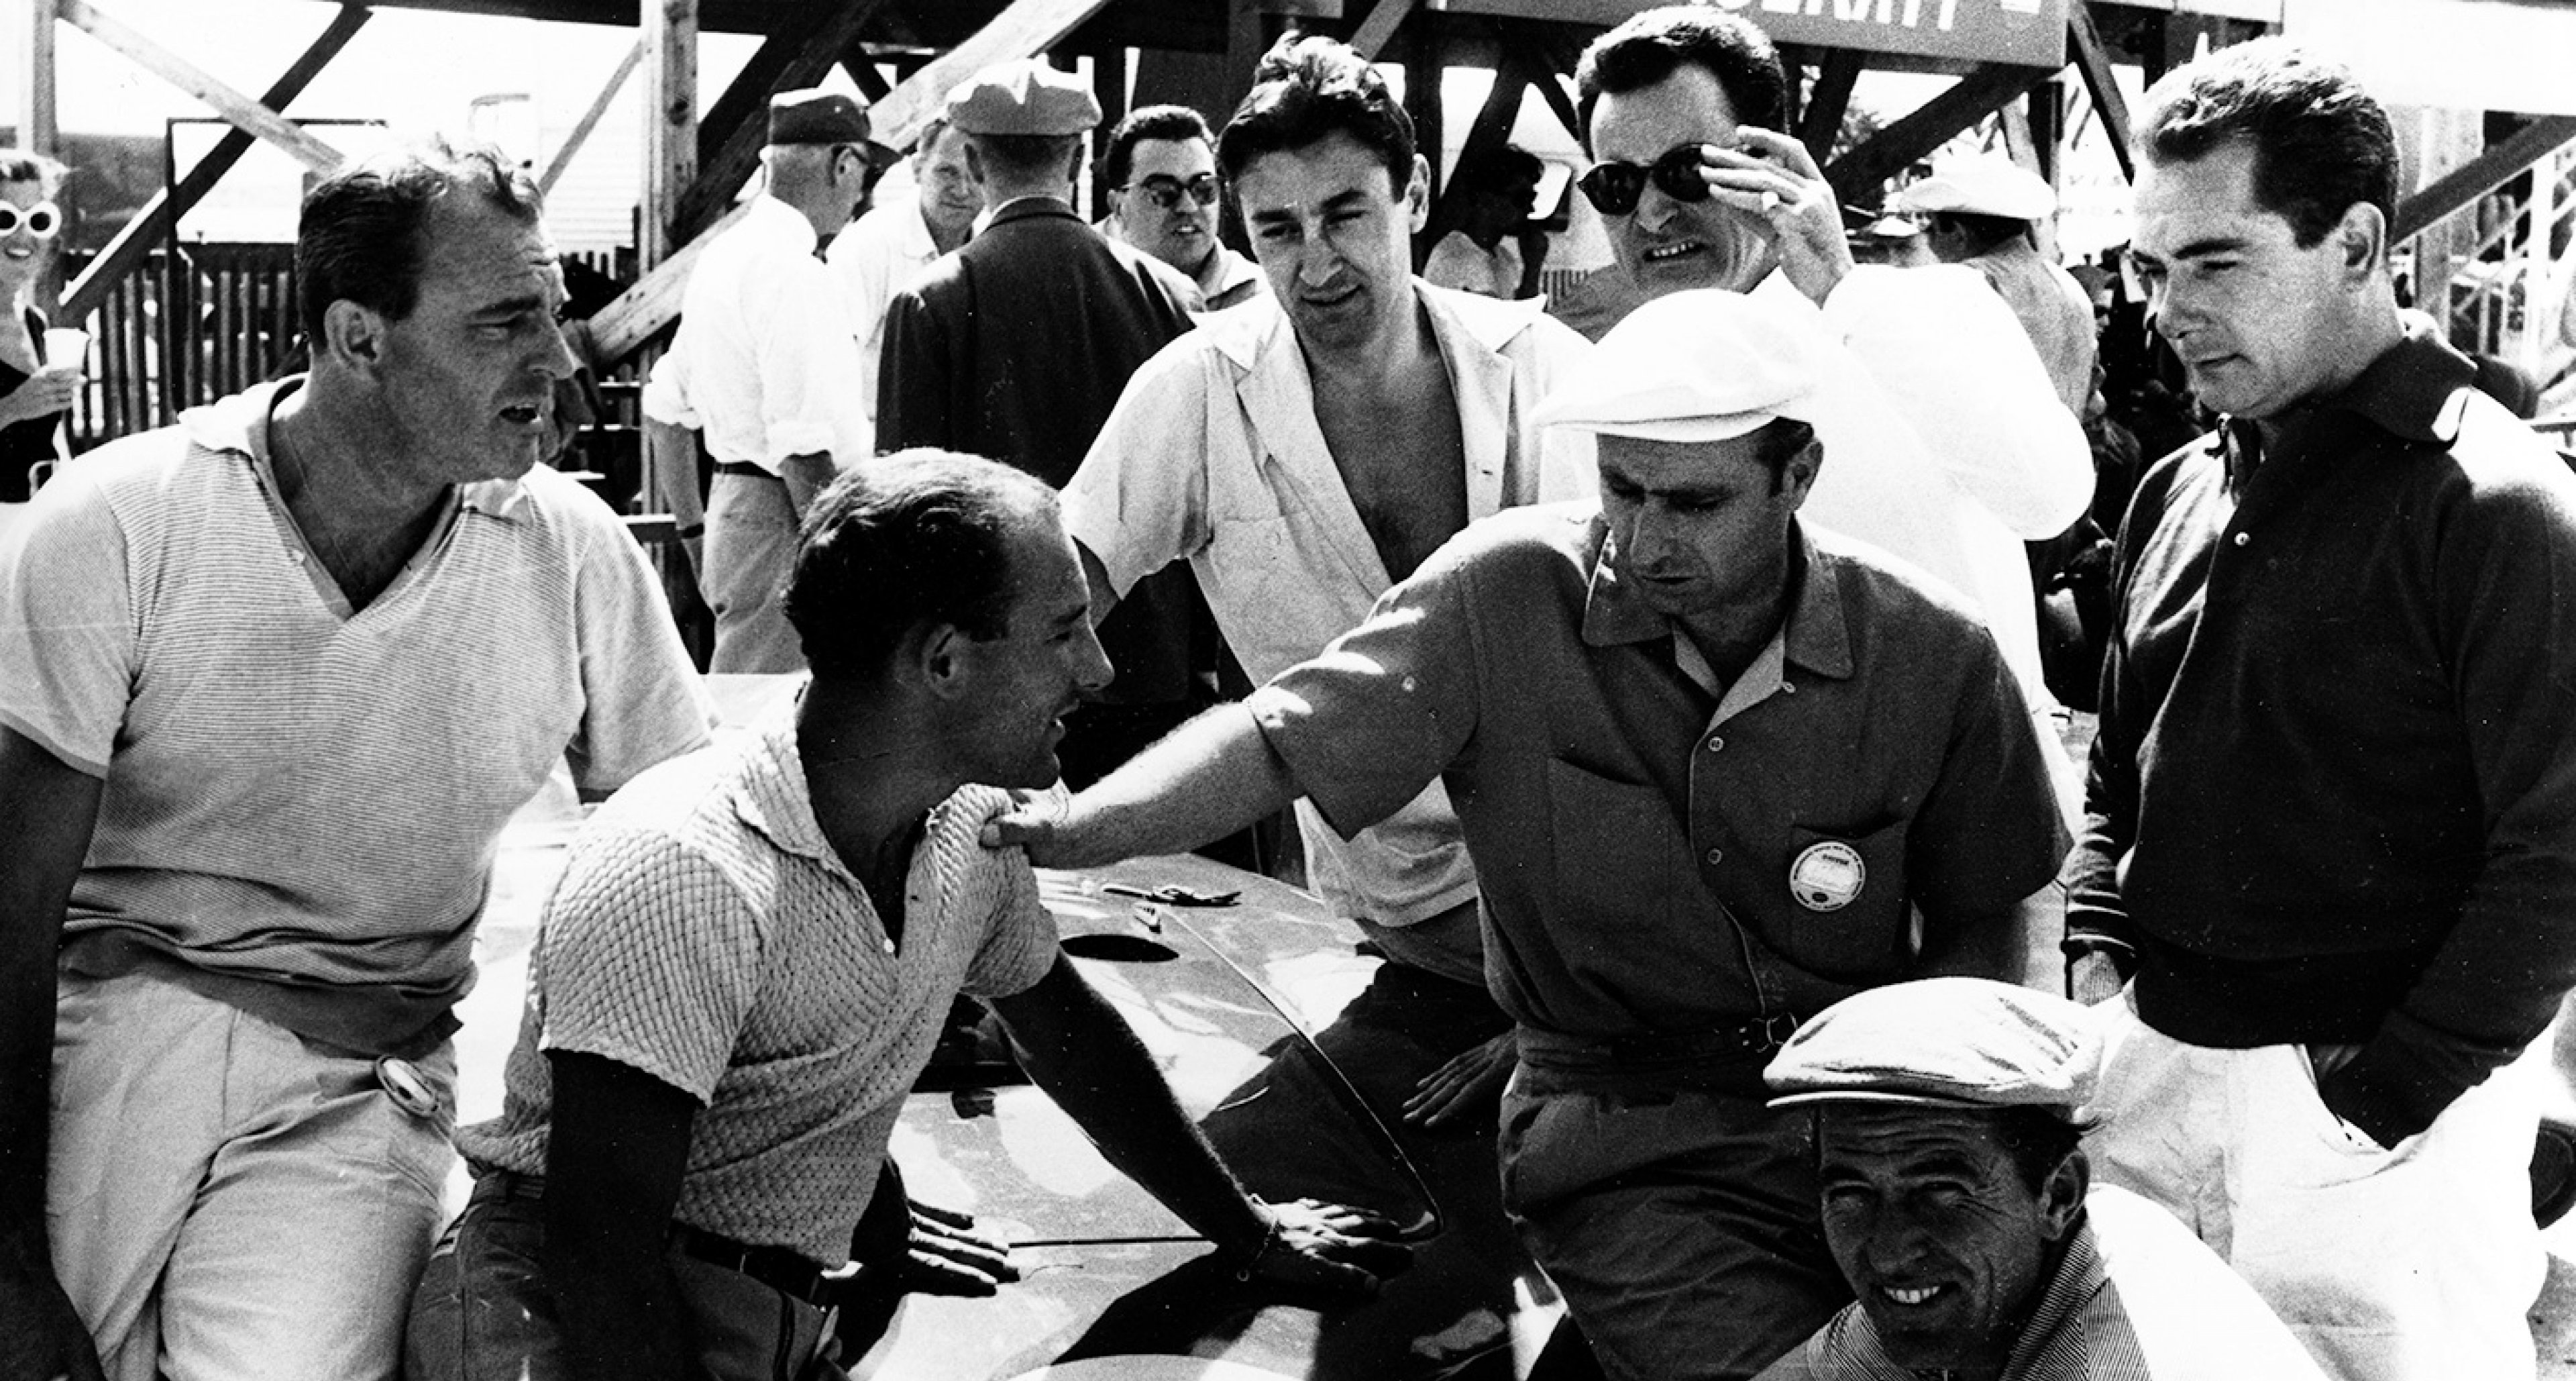 Sebring, 1957. From left: Schell, Moss, Fangio, Salvadori, Scarlatti, Behra and Shelby with the winning Maserati 450S